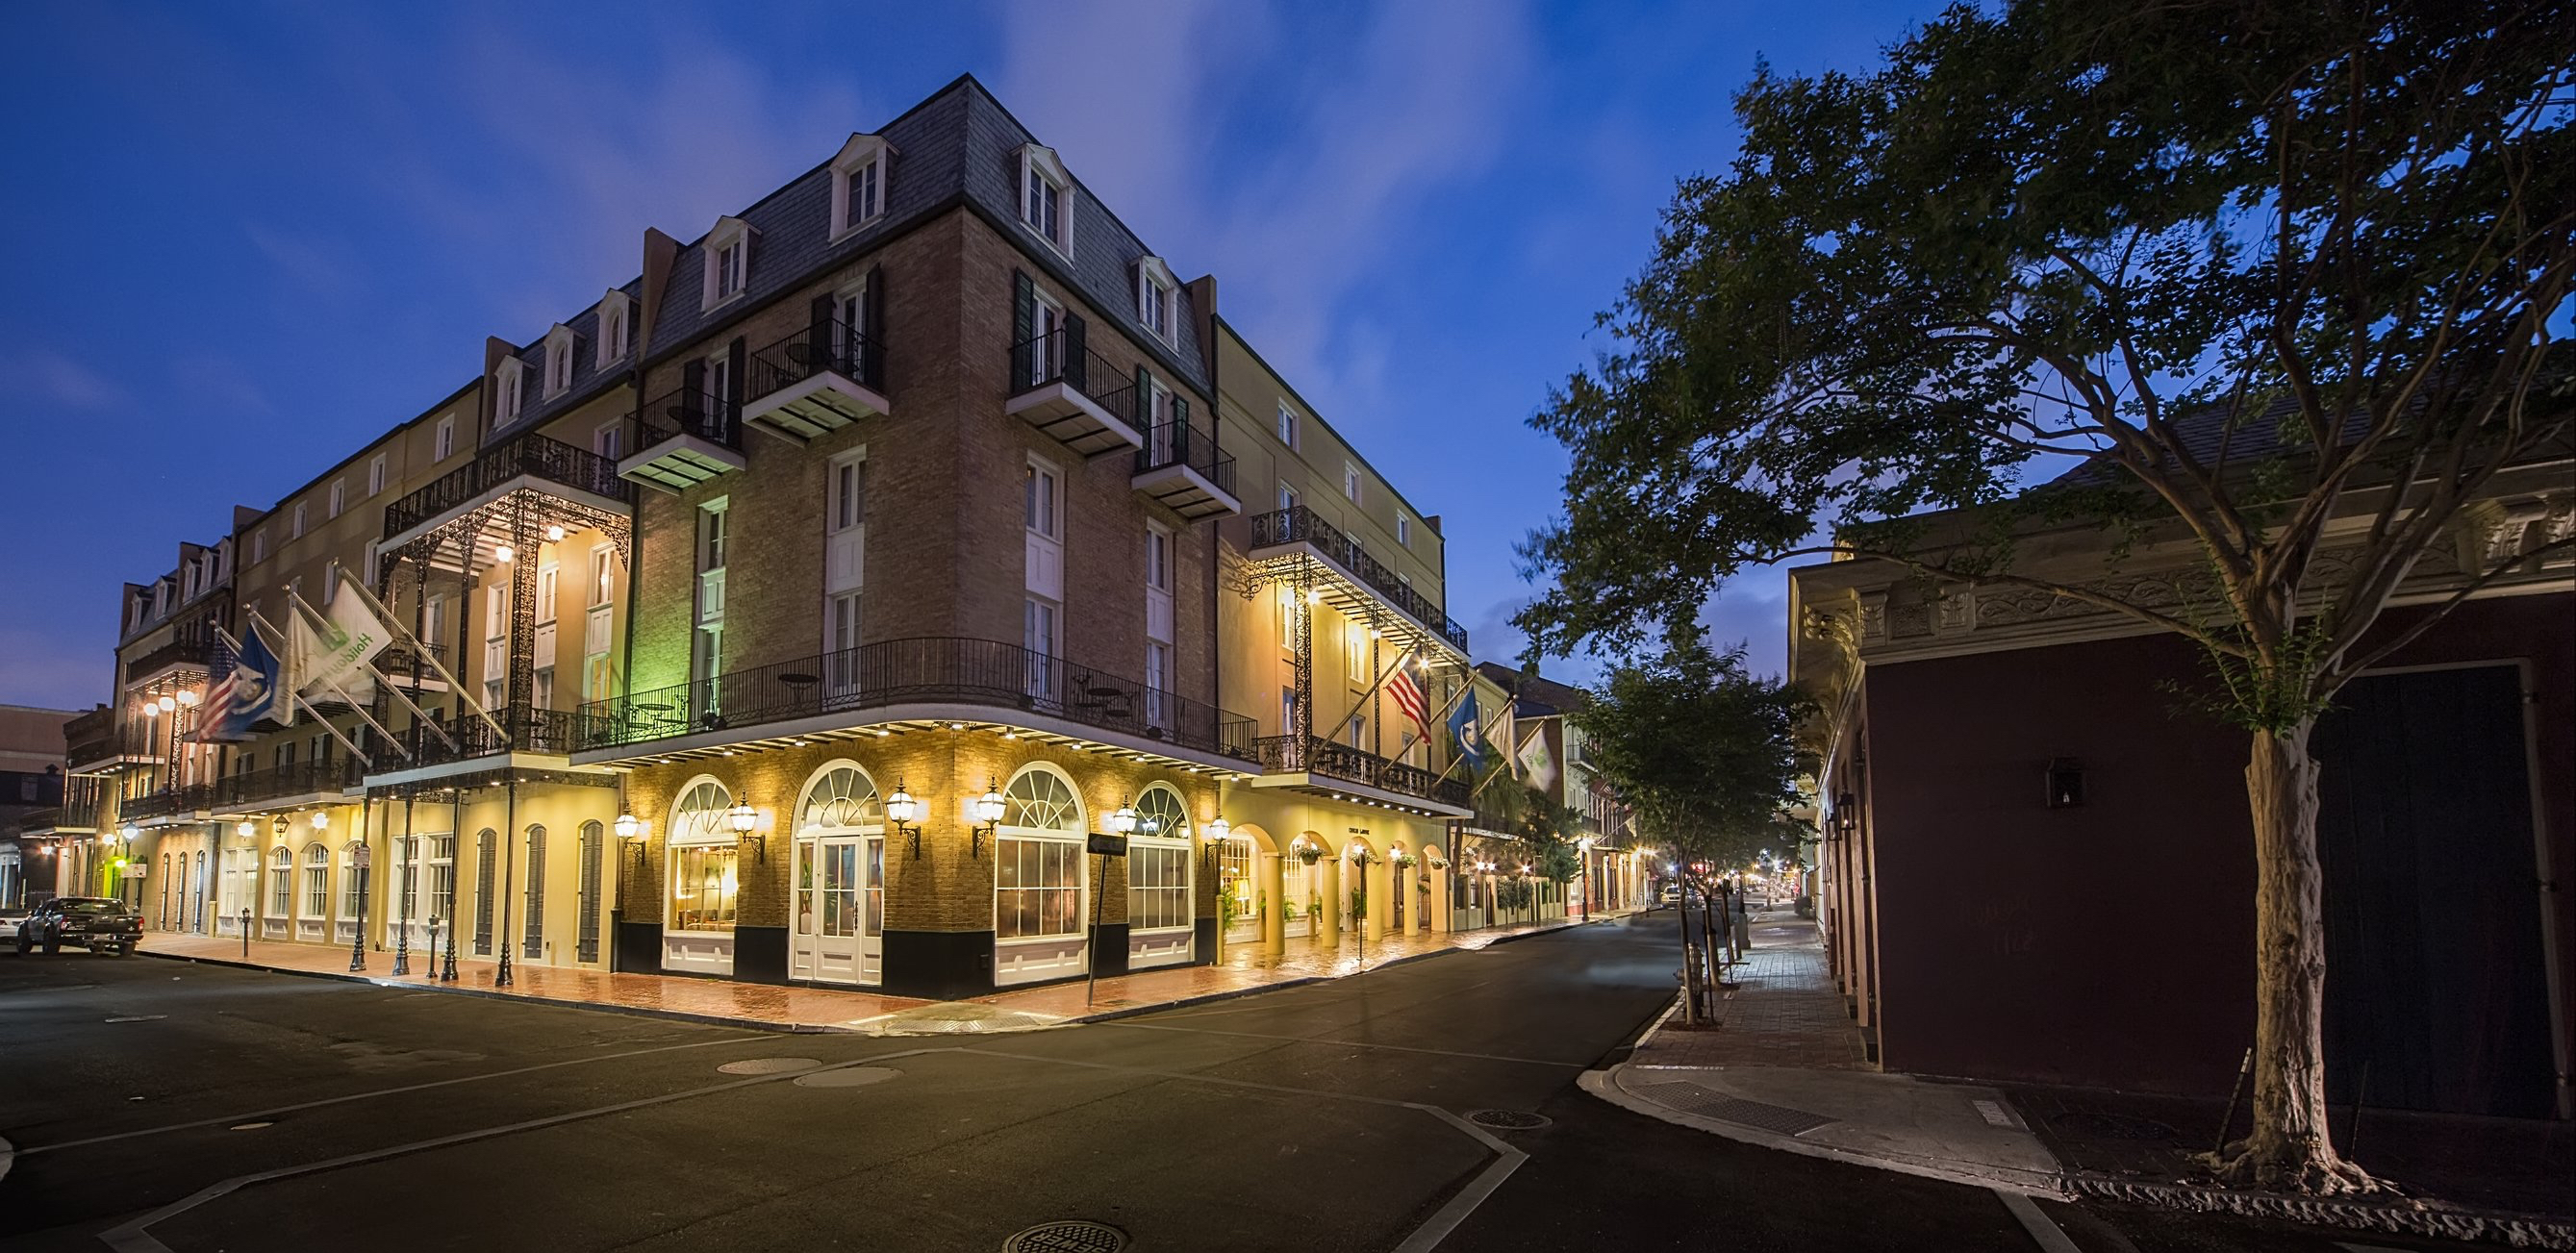 Chateau lemoyne french quarter boutique hotel completes for Best boutique hotels french quarter